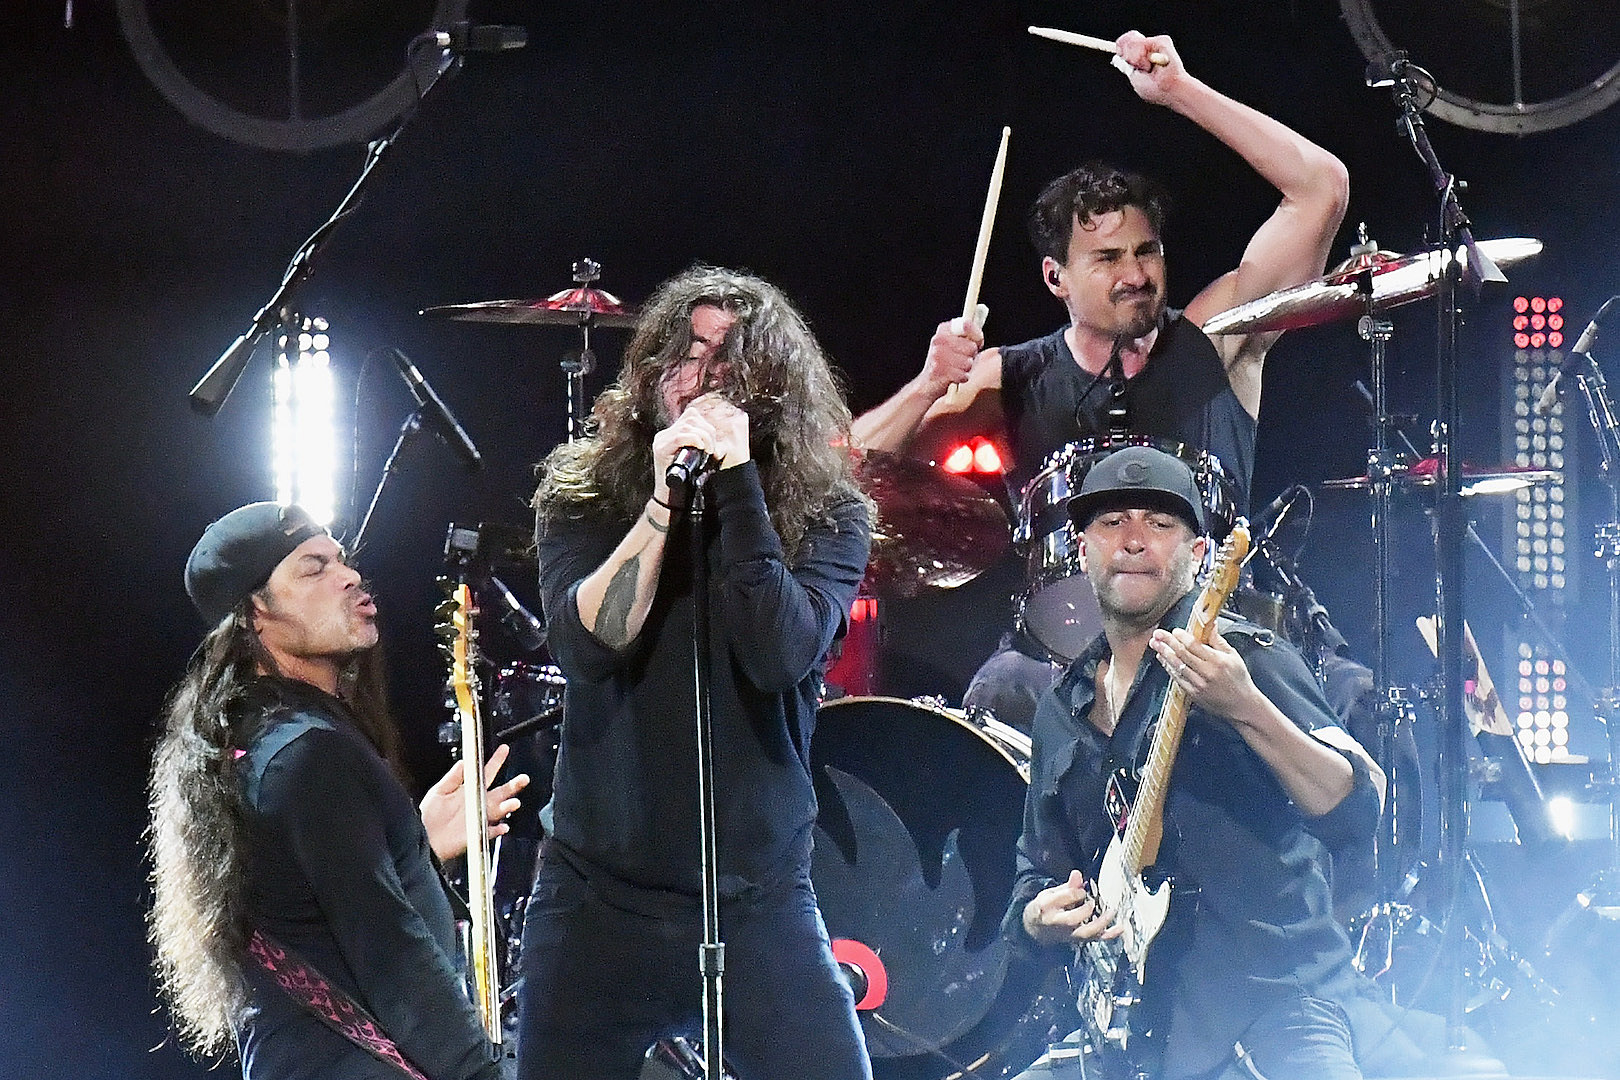 Watch Metallica + Foo Fighters Cover Soundgarden + Audioslave